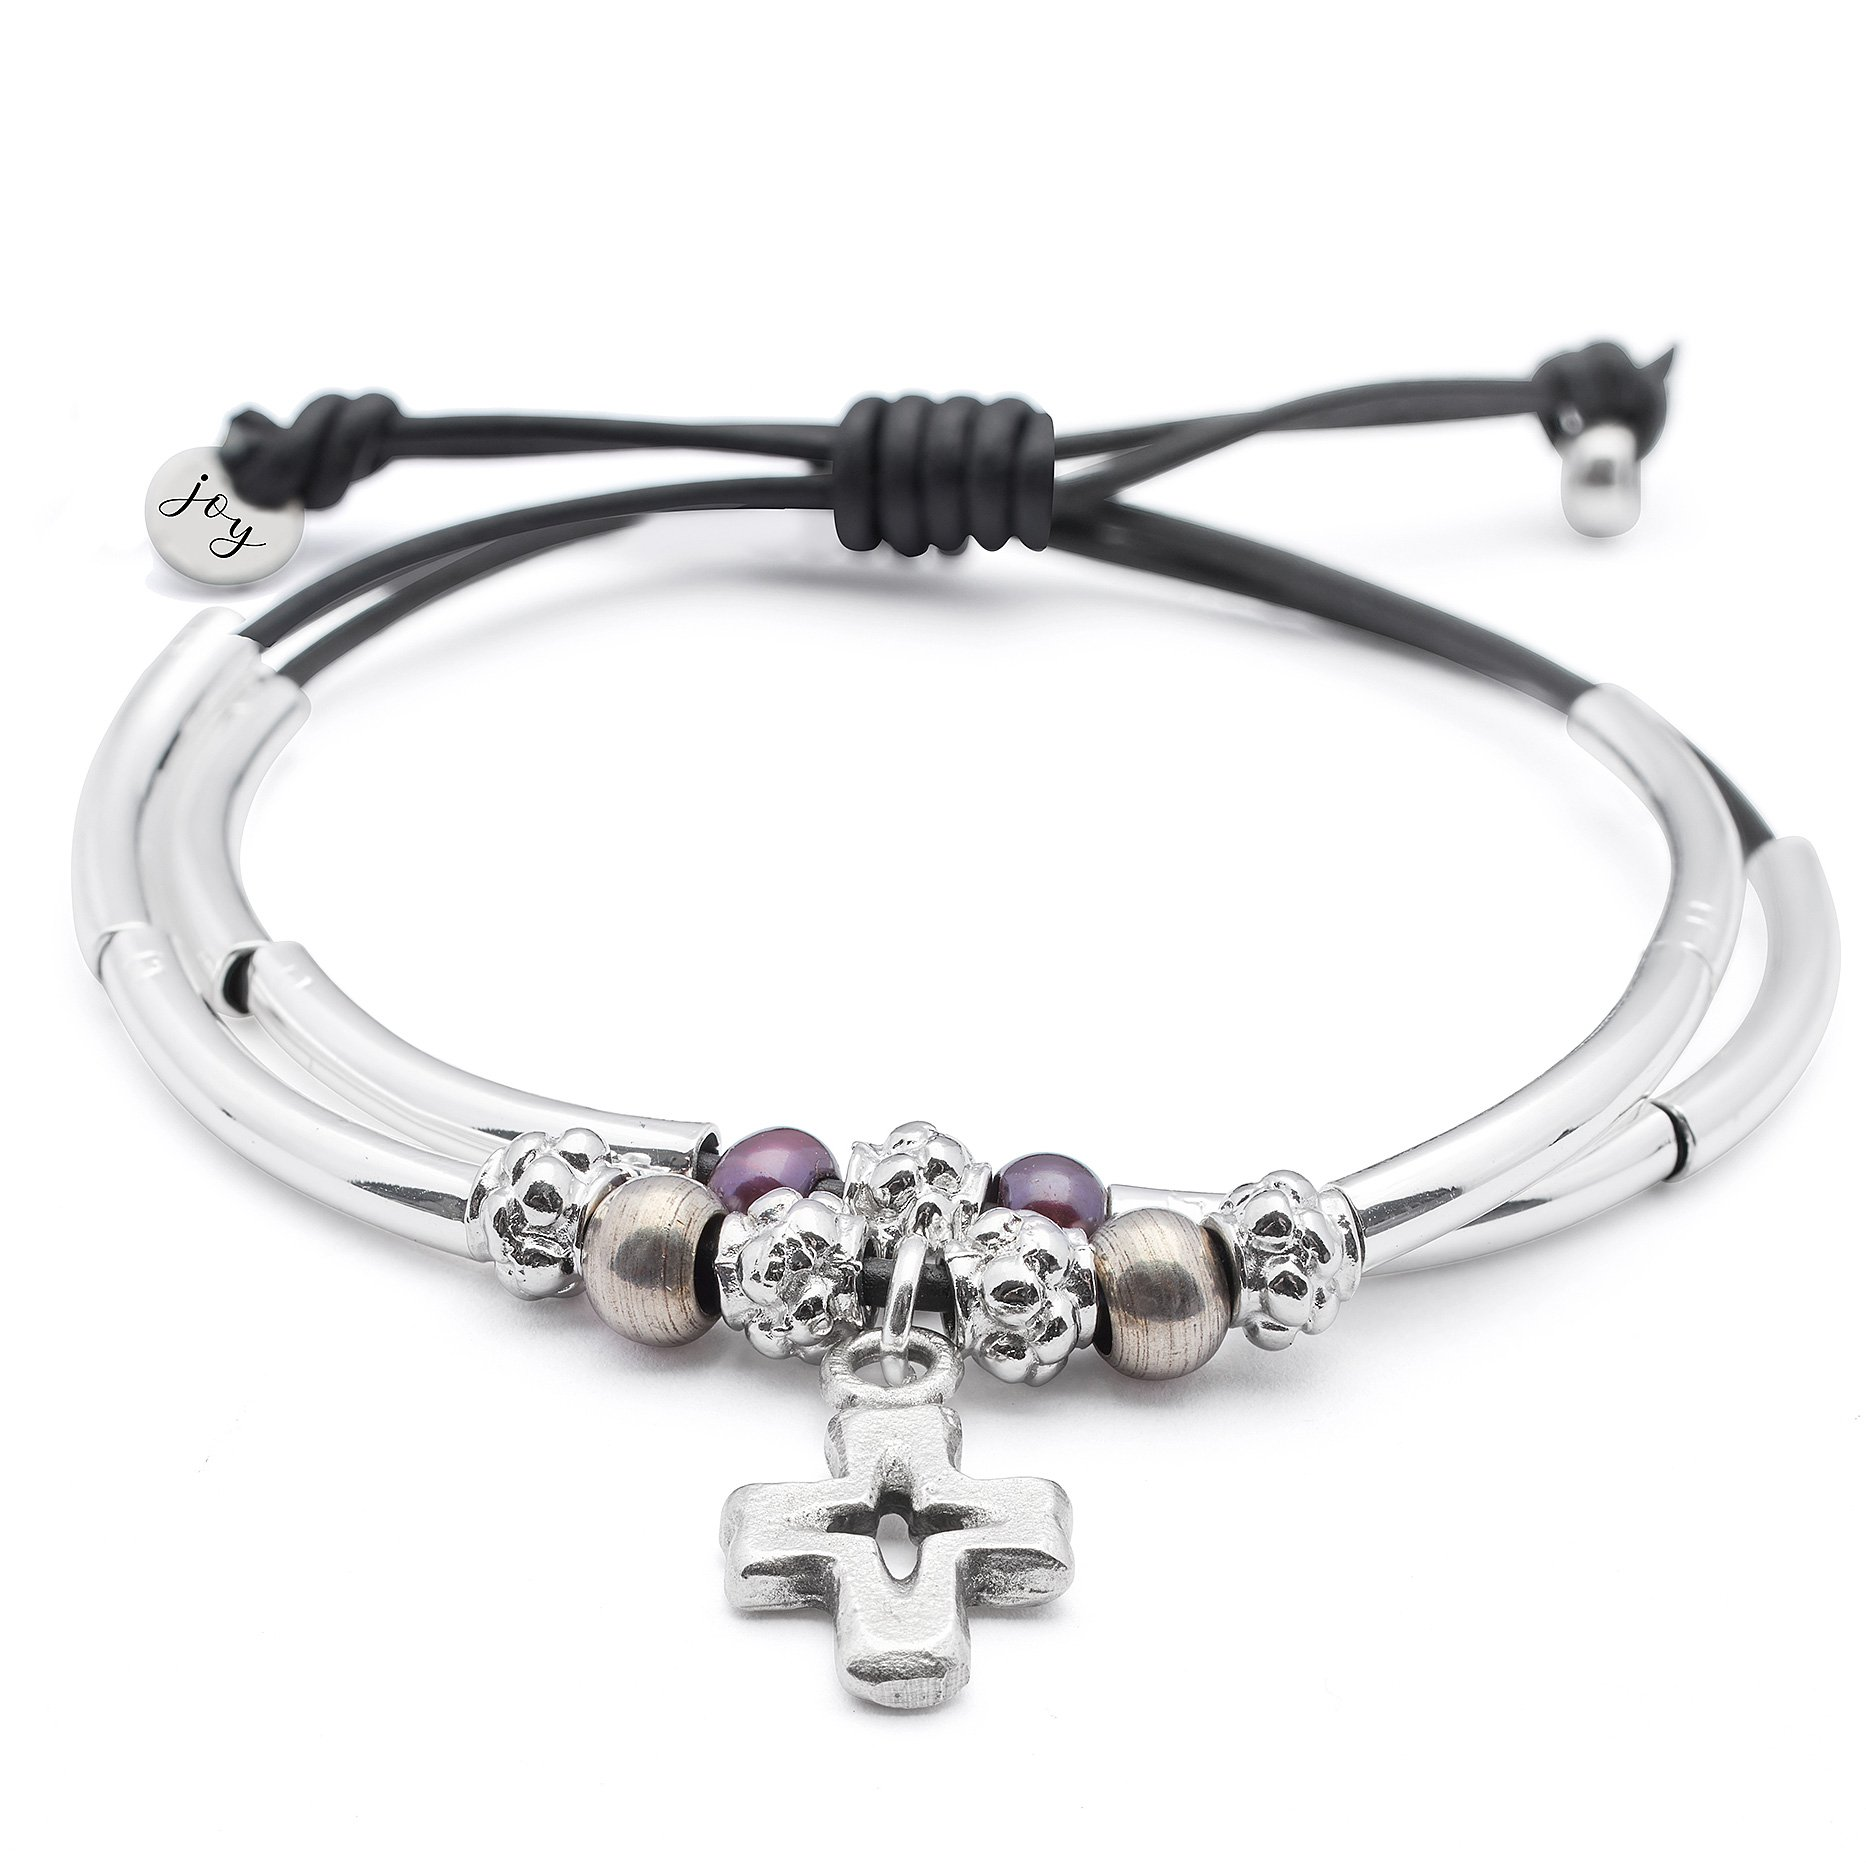 Faith 2 Strand Adjustable Black Leather Silver Plated Charm Bracelet w Silver Cross Charm by Lizzy James